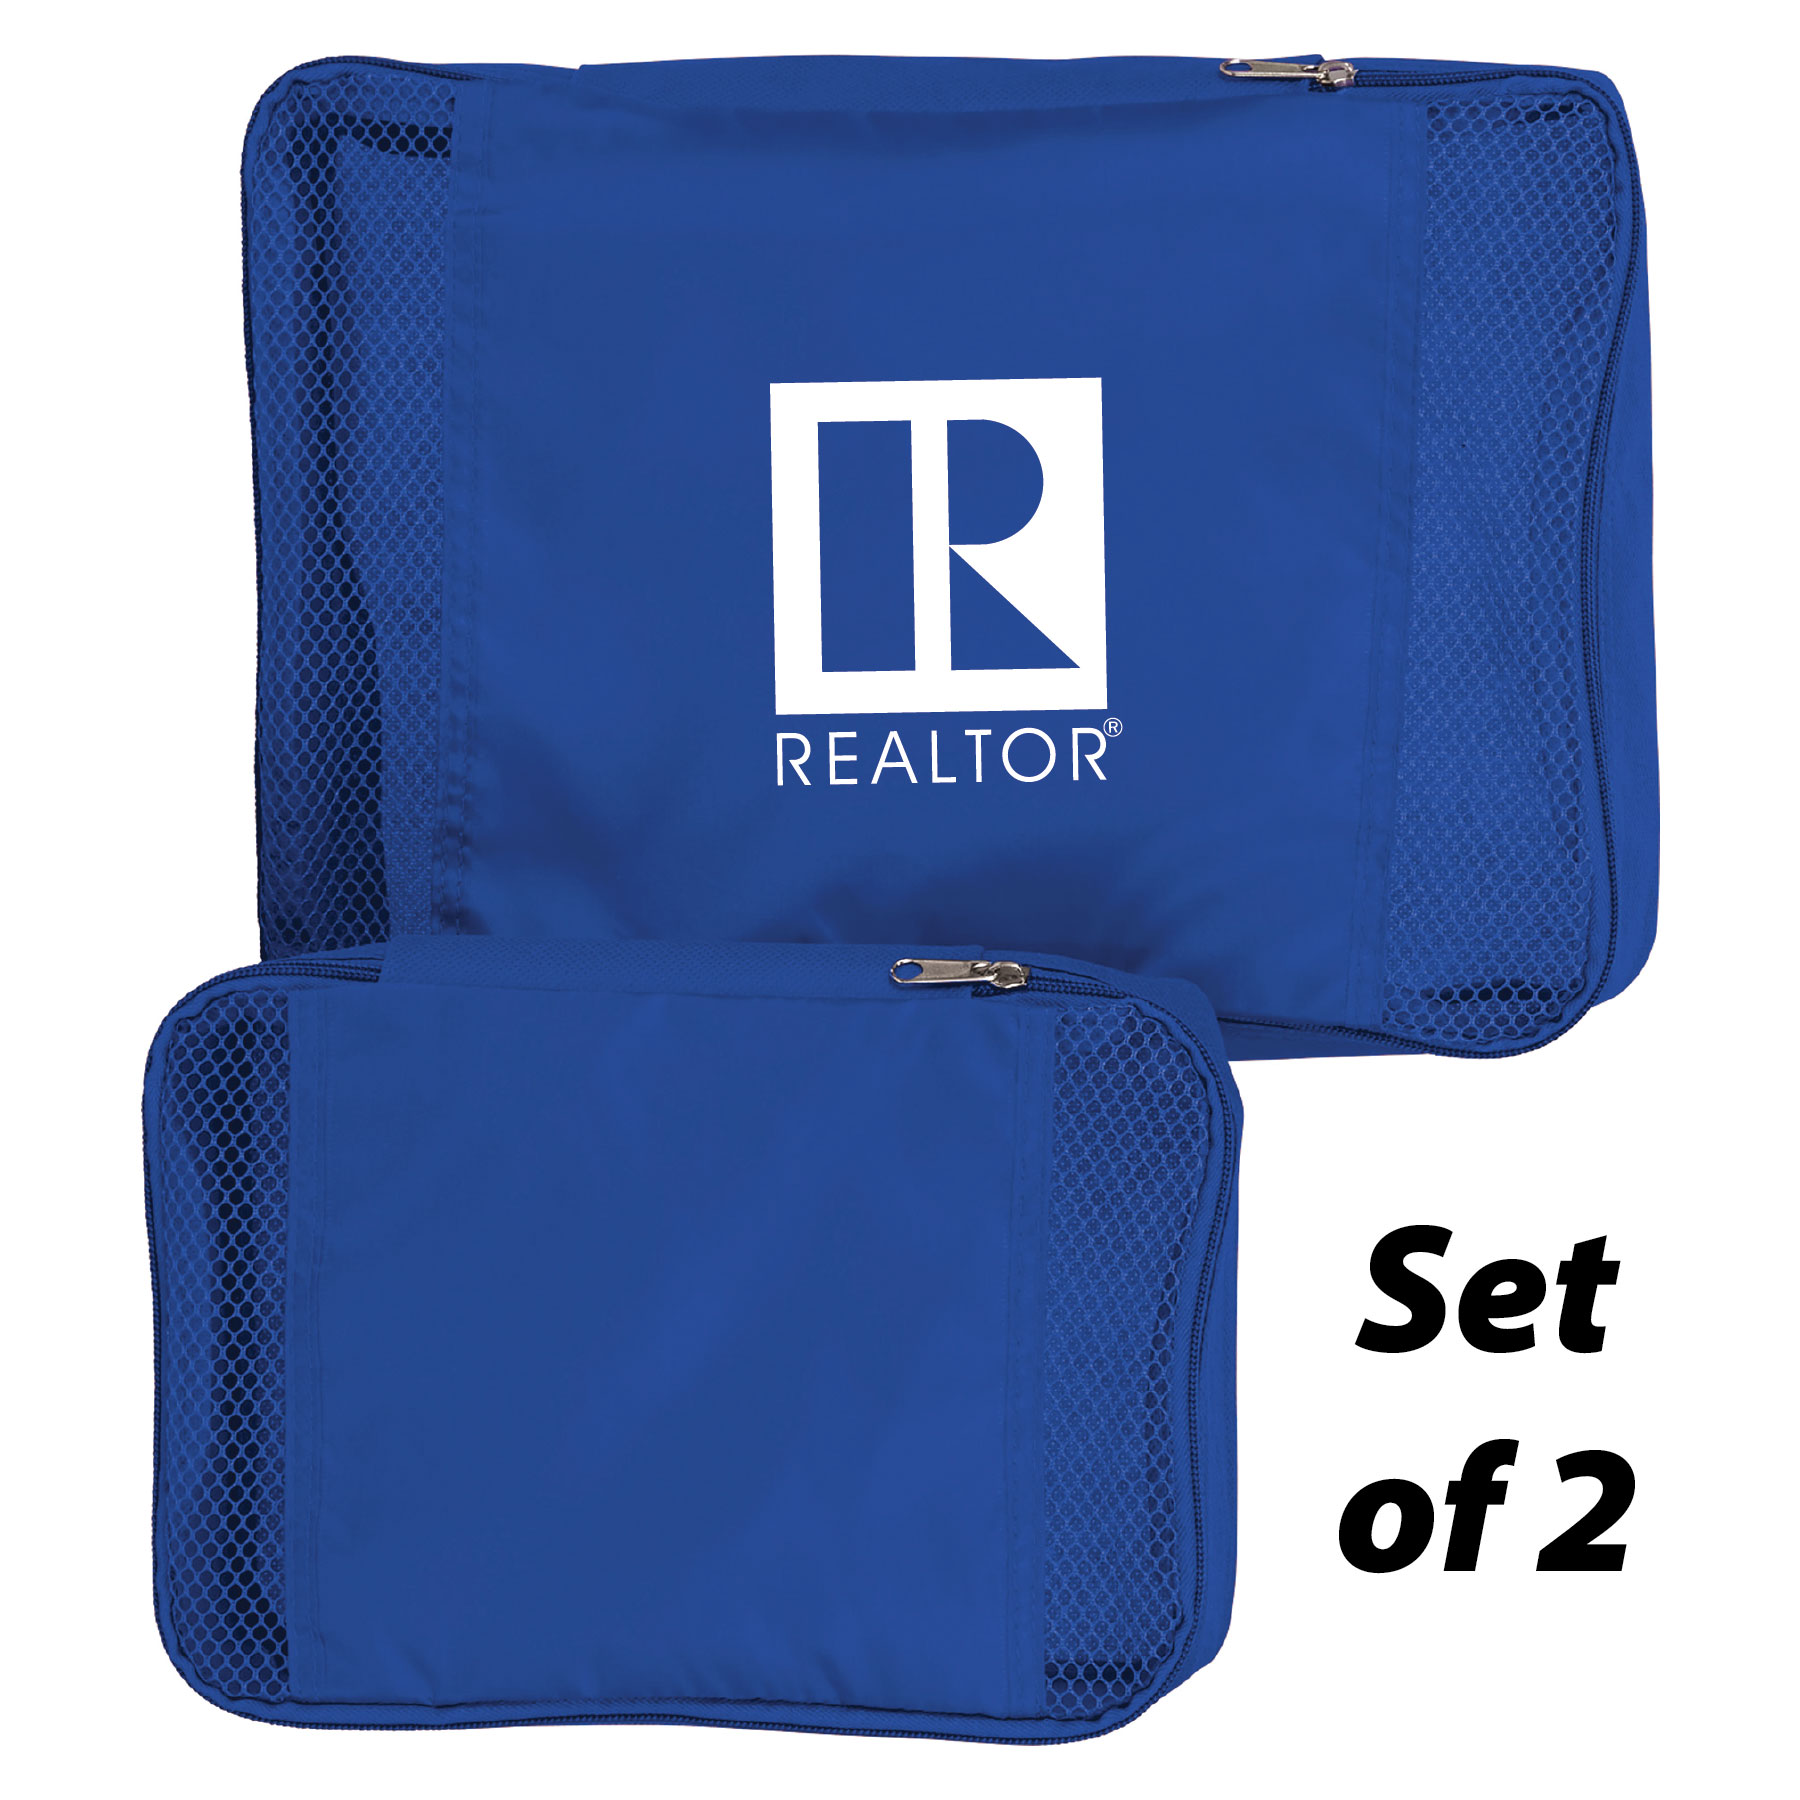 Packing Cubes (Set of 2) Packings,Cubes,Cubs,Luggage,Show,Gifts